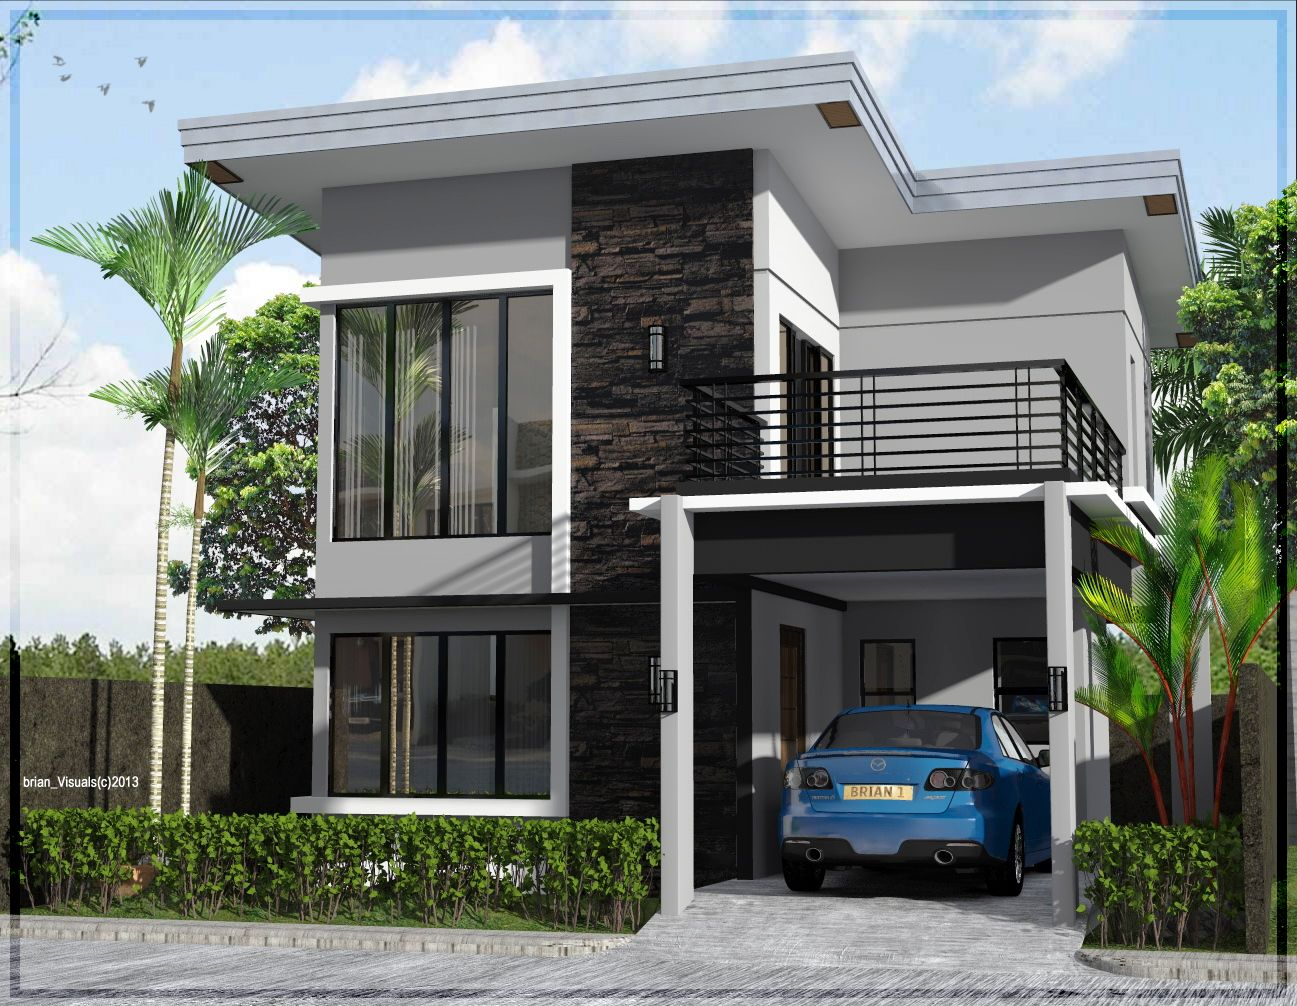 House design two story - Small Two Story House Design Homeworlddesign Interiordesign Interior Interiors House